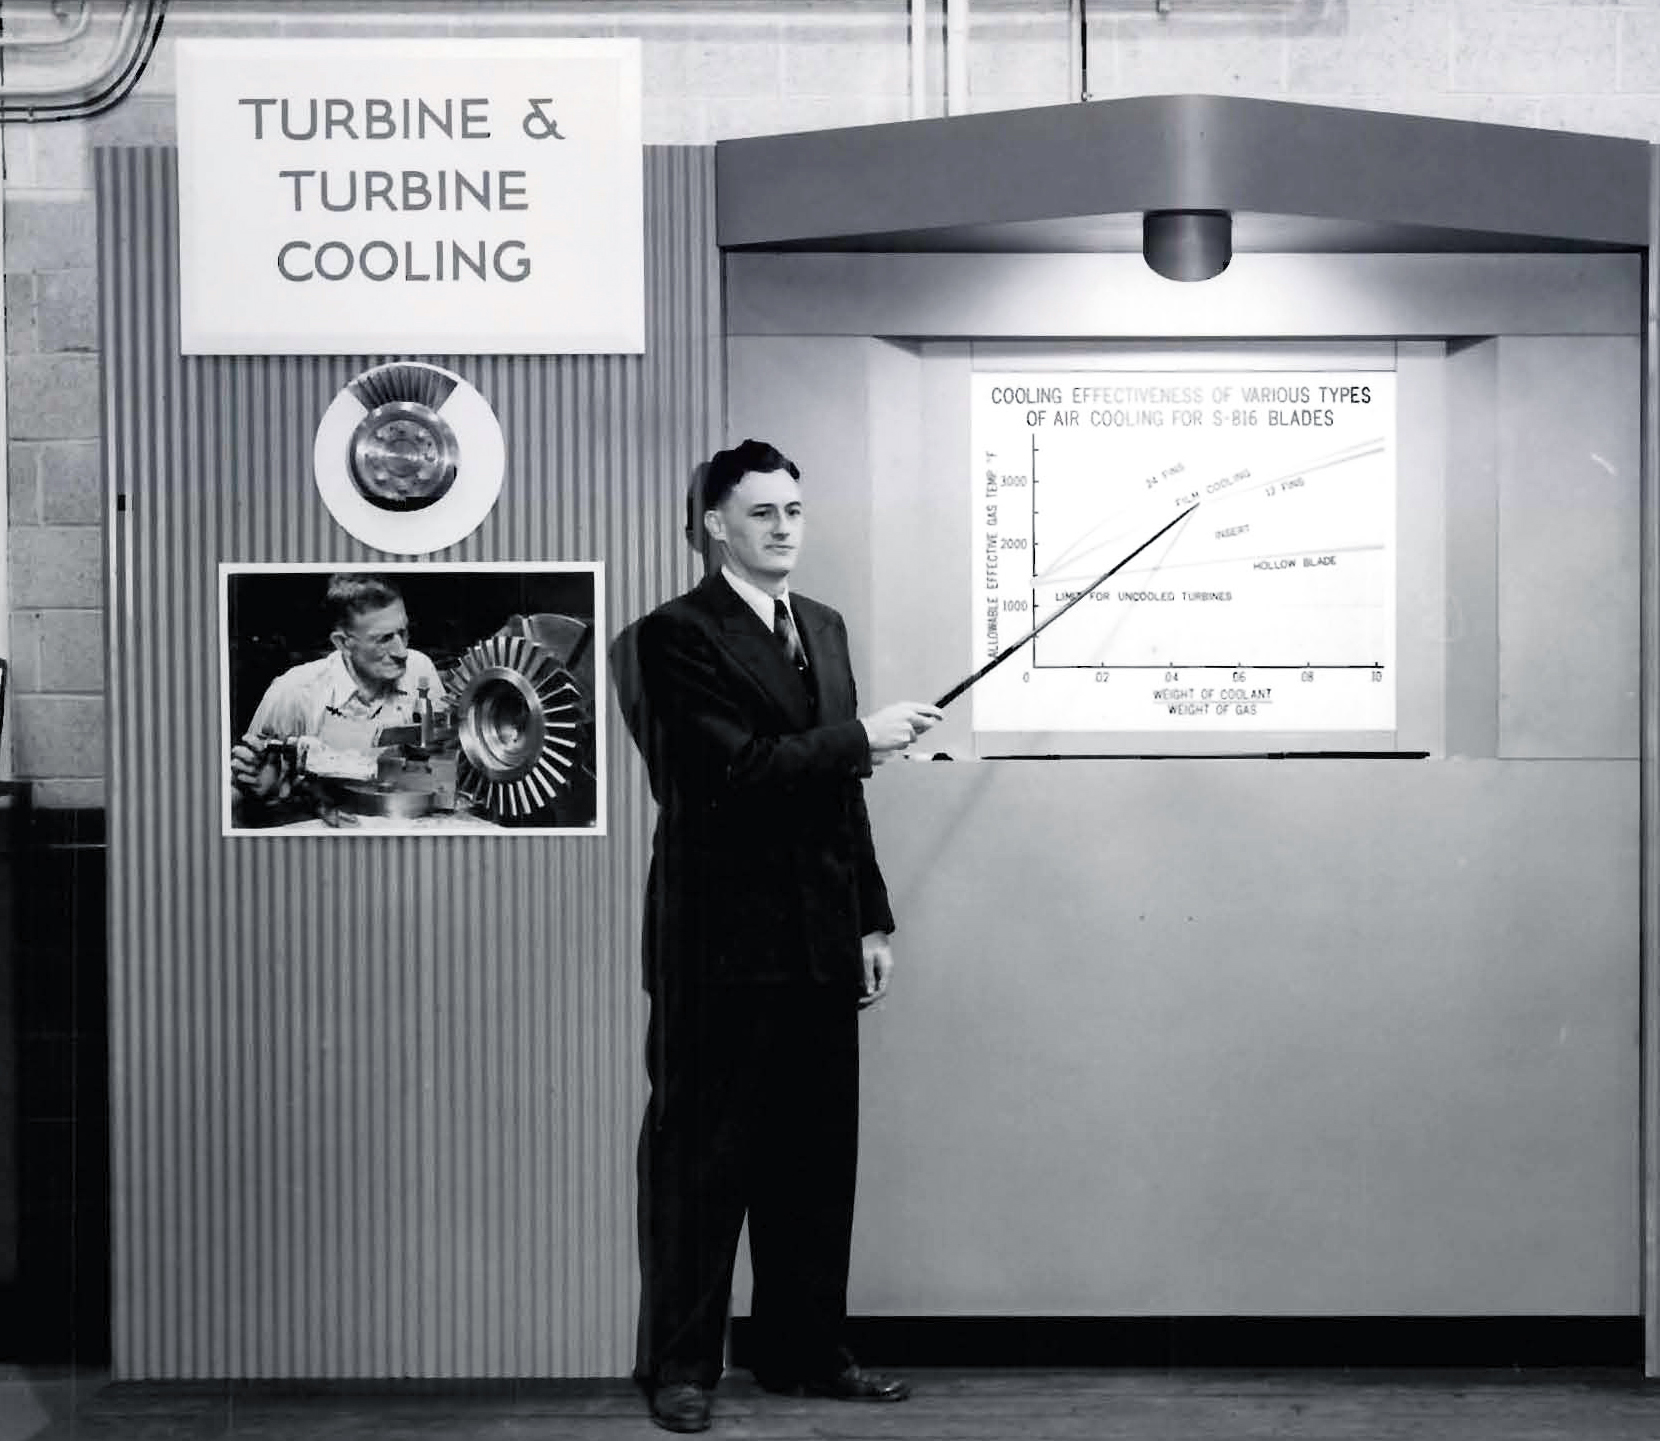 Turbine Cooling Nasa Glenn Research Center Diagram Showing The Operation Of An Axial Flow Turbojet Engine Jack Esgar Discusses